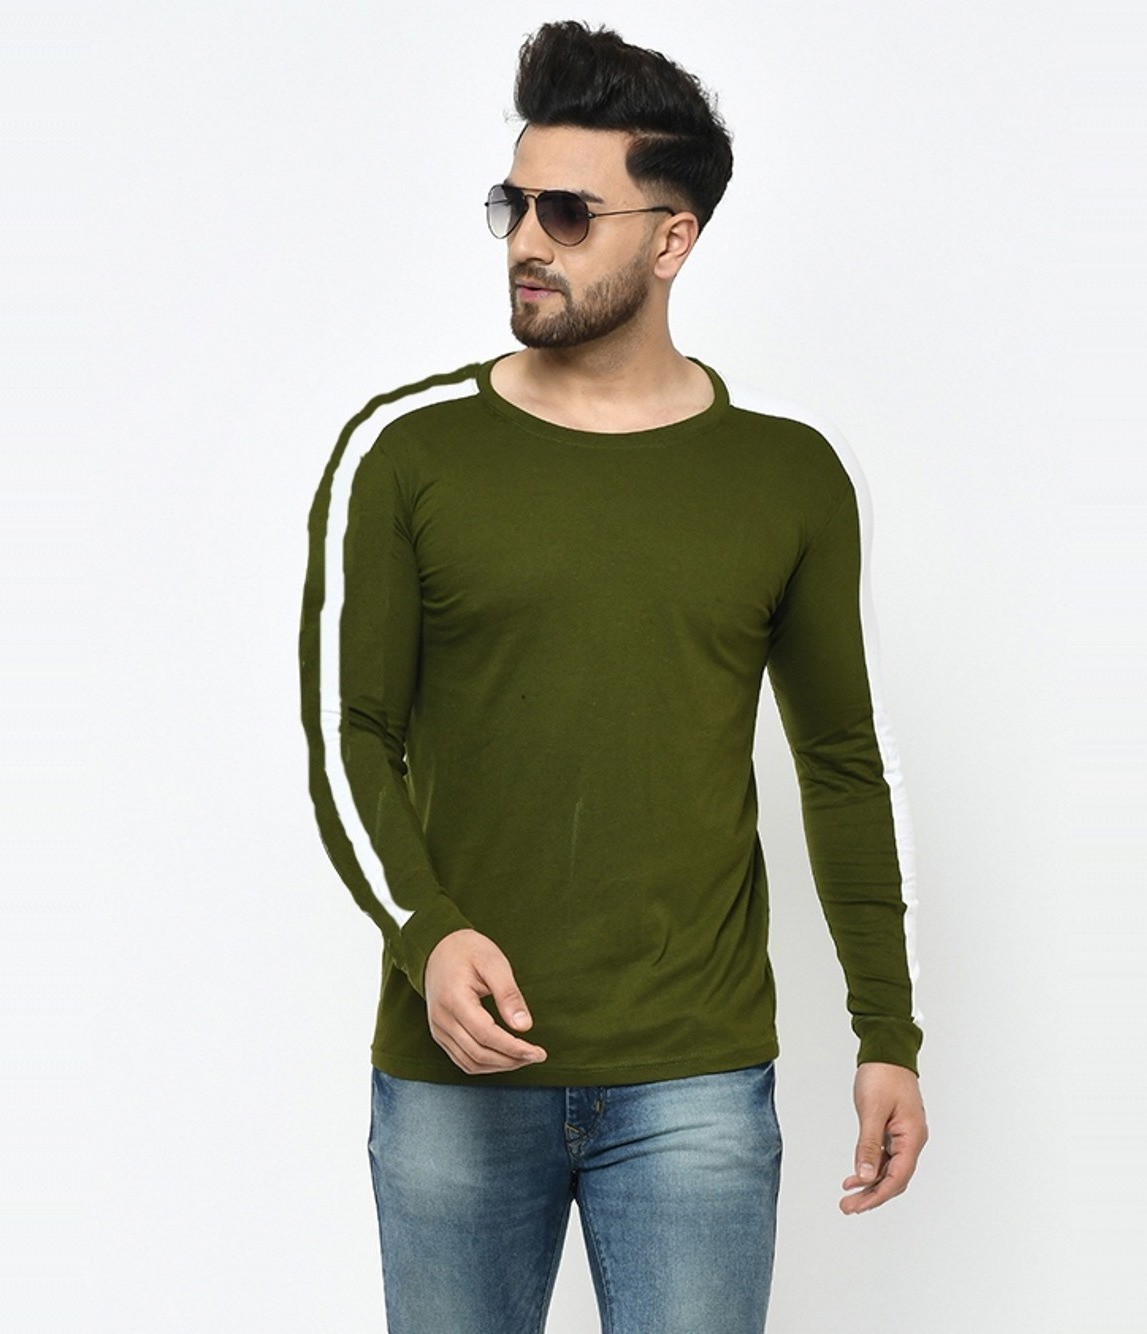 Smartees Green Cotton Blend Round Neck Self Design T-shirt For Men